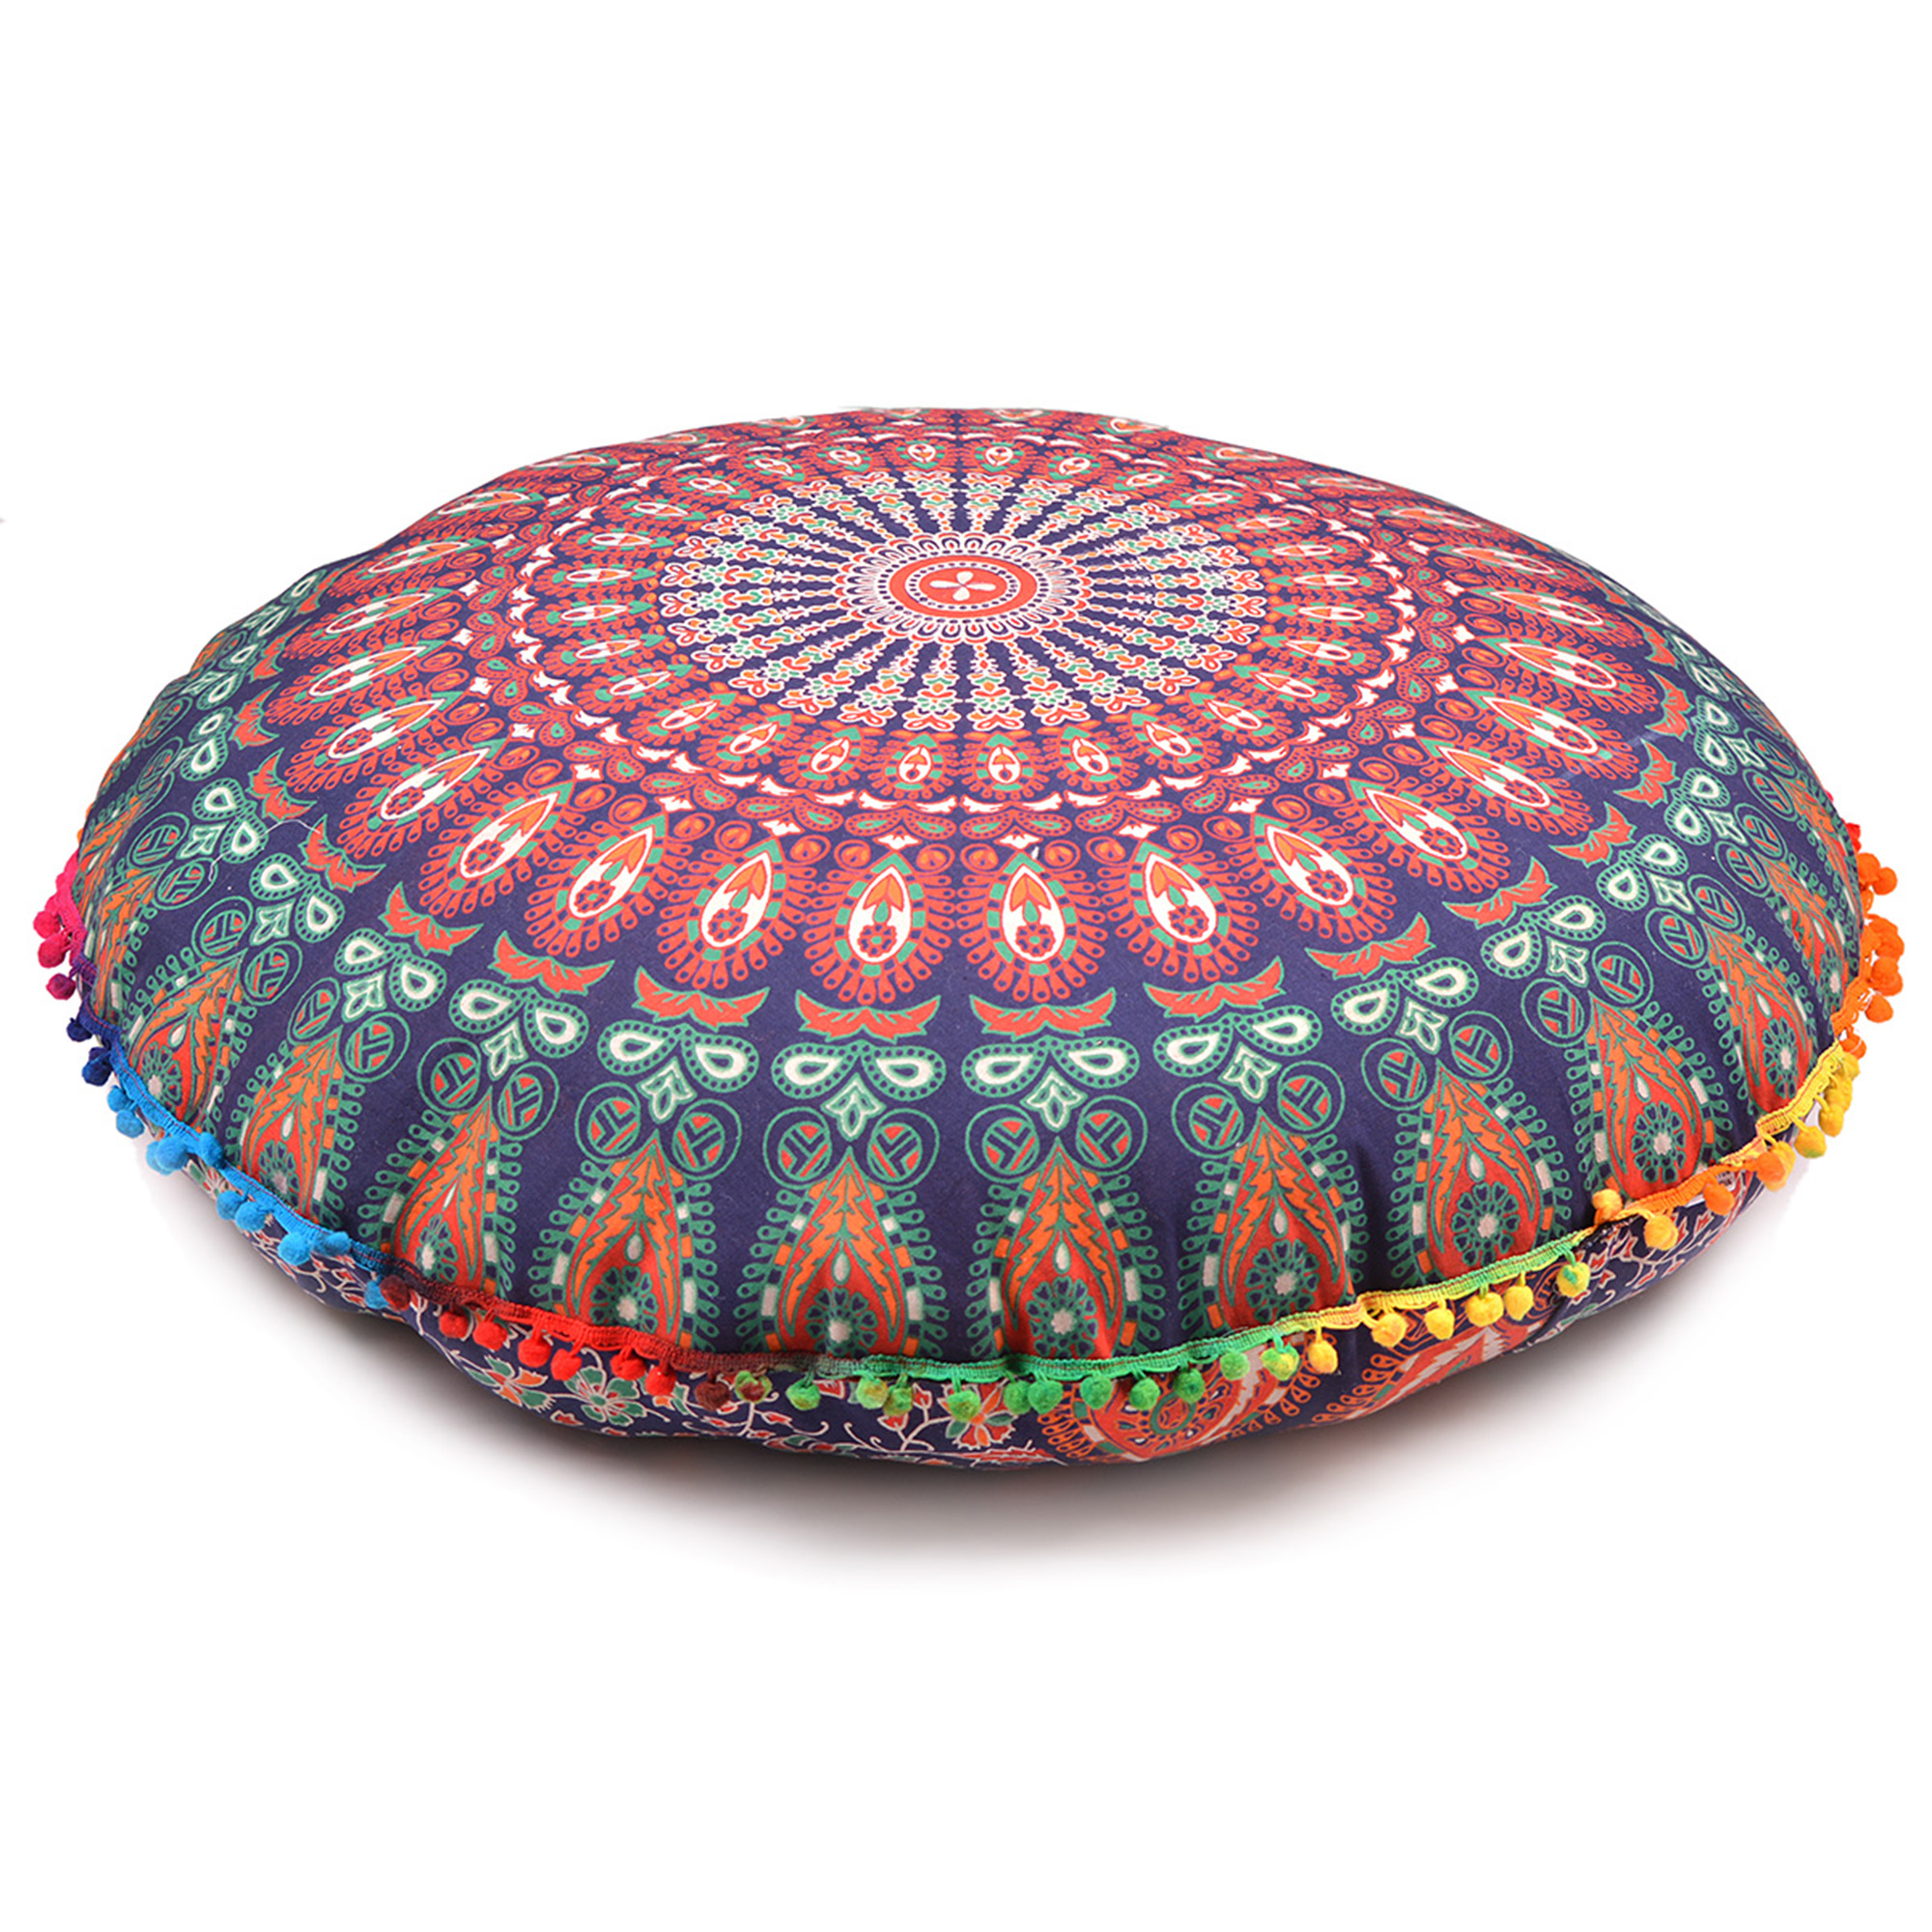 Blue Floor Cushion Covers Mandala Pillow Cover Cases Round Patio Throws Decorative Cushion... by Goood Times